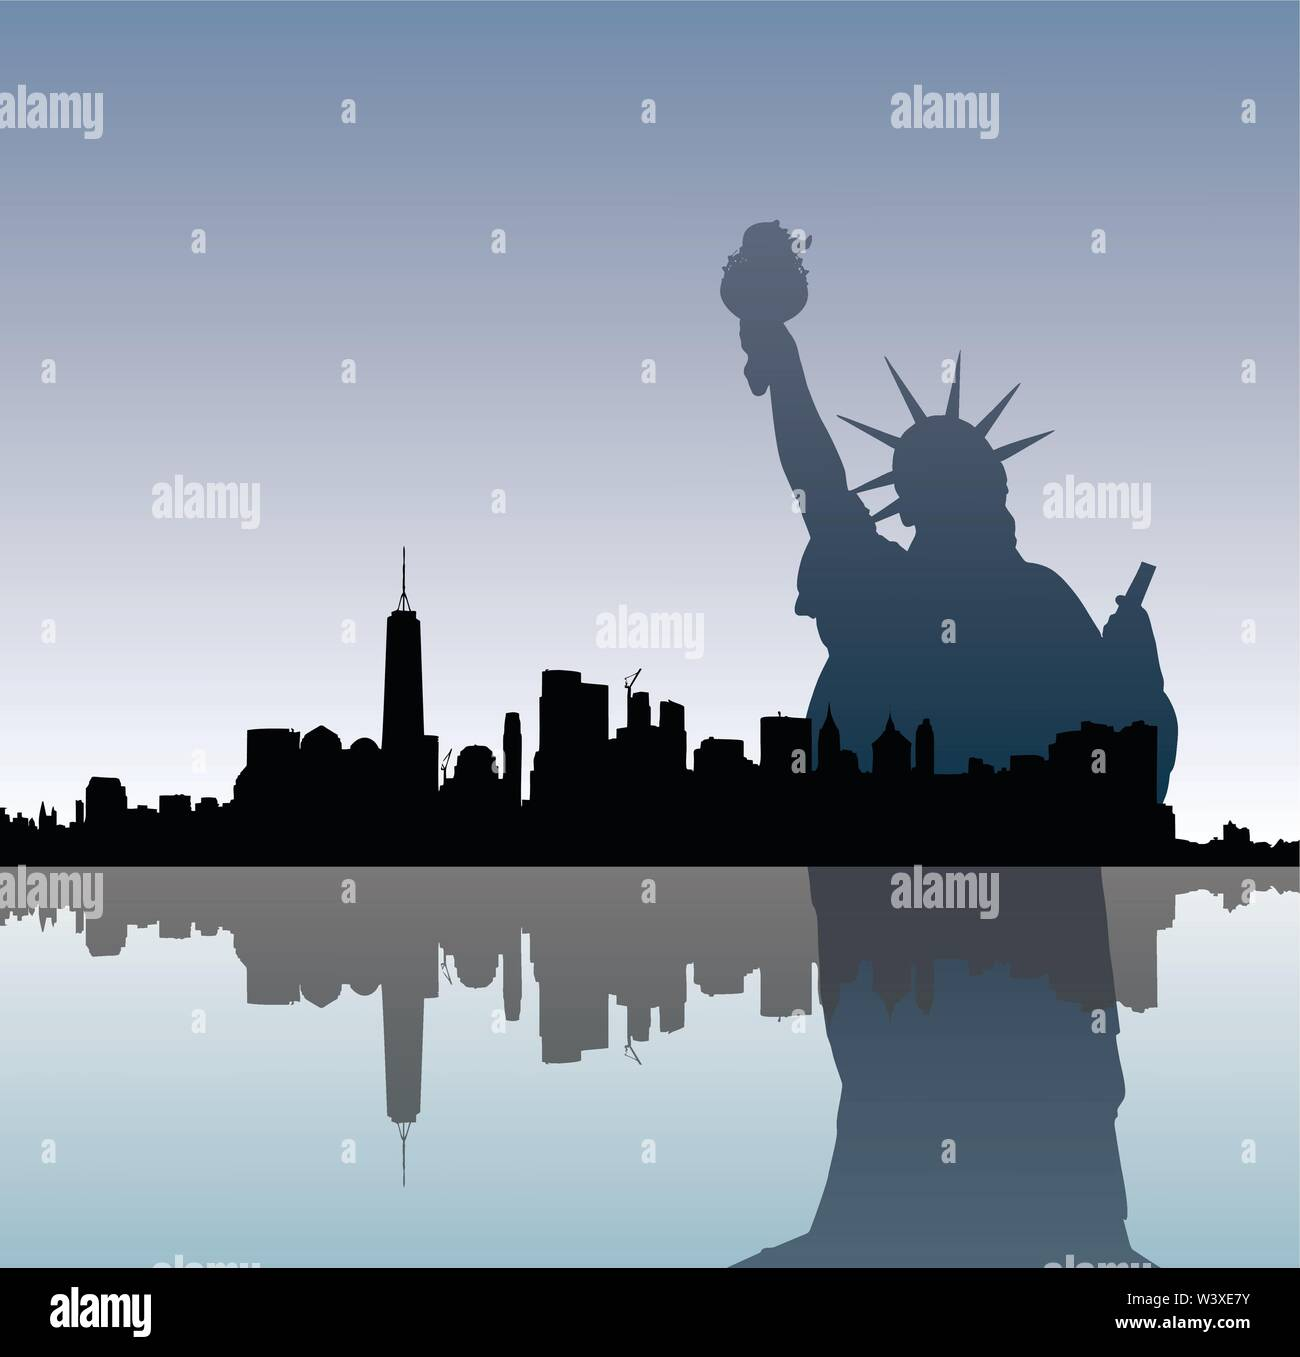 Silhouettes of Statue of Liberty and Manhattah skyline. - Stock Vector